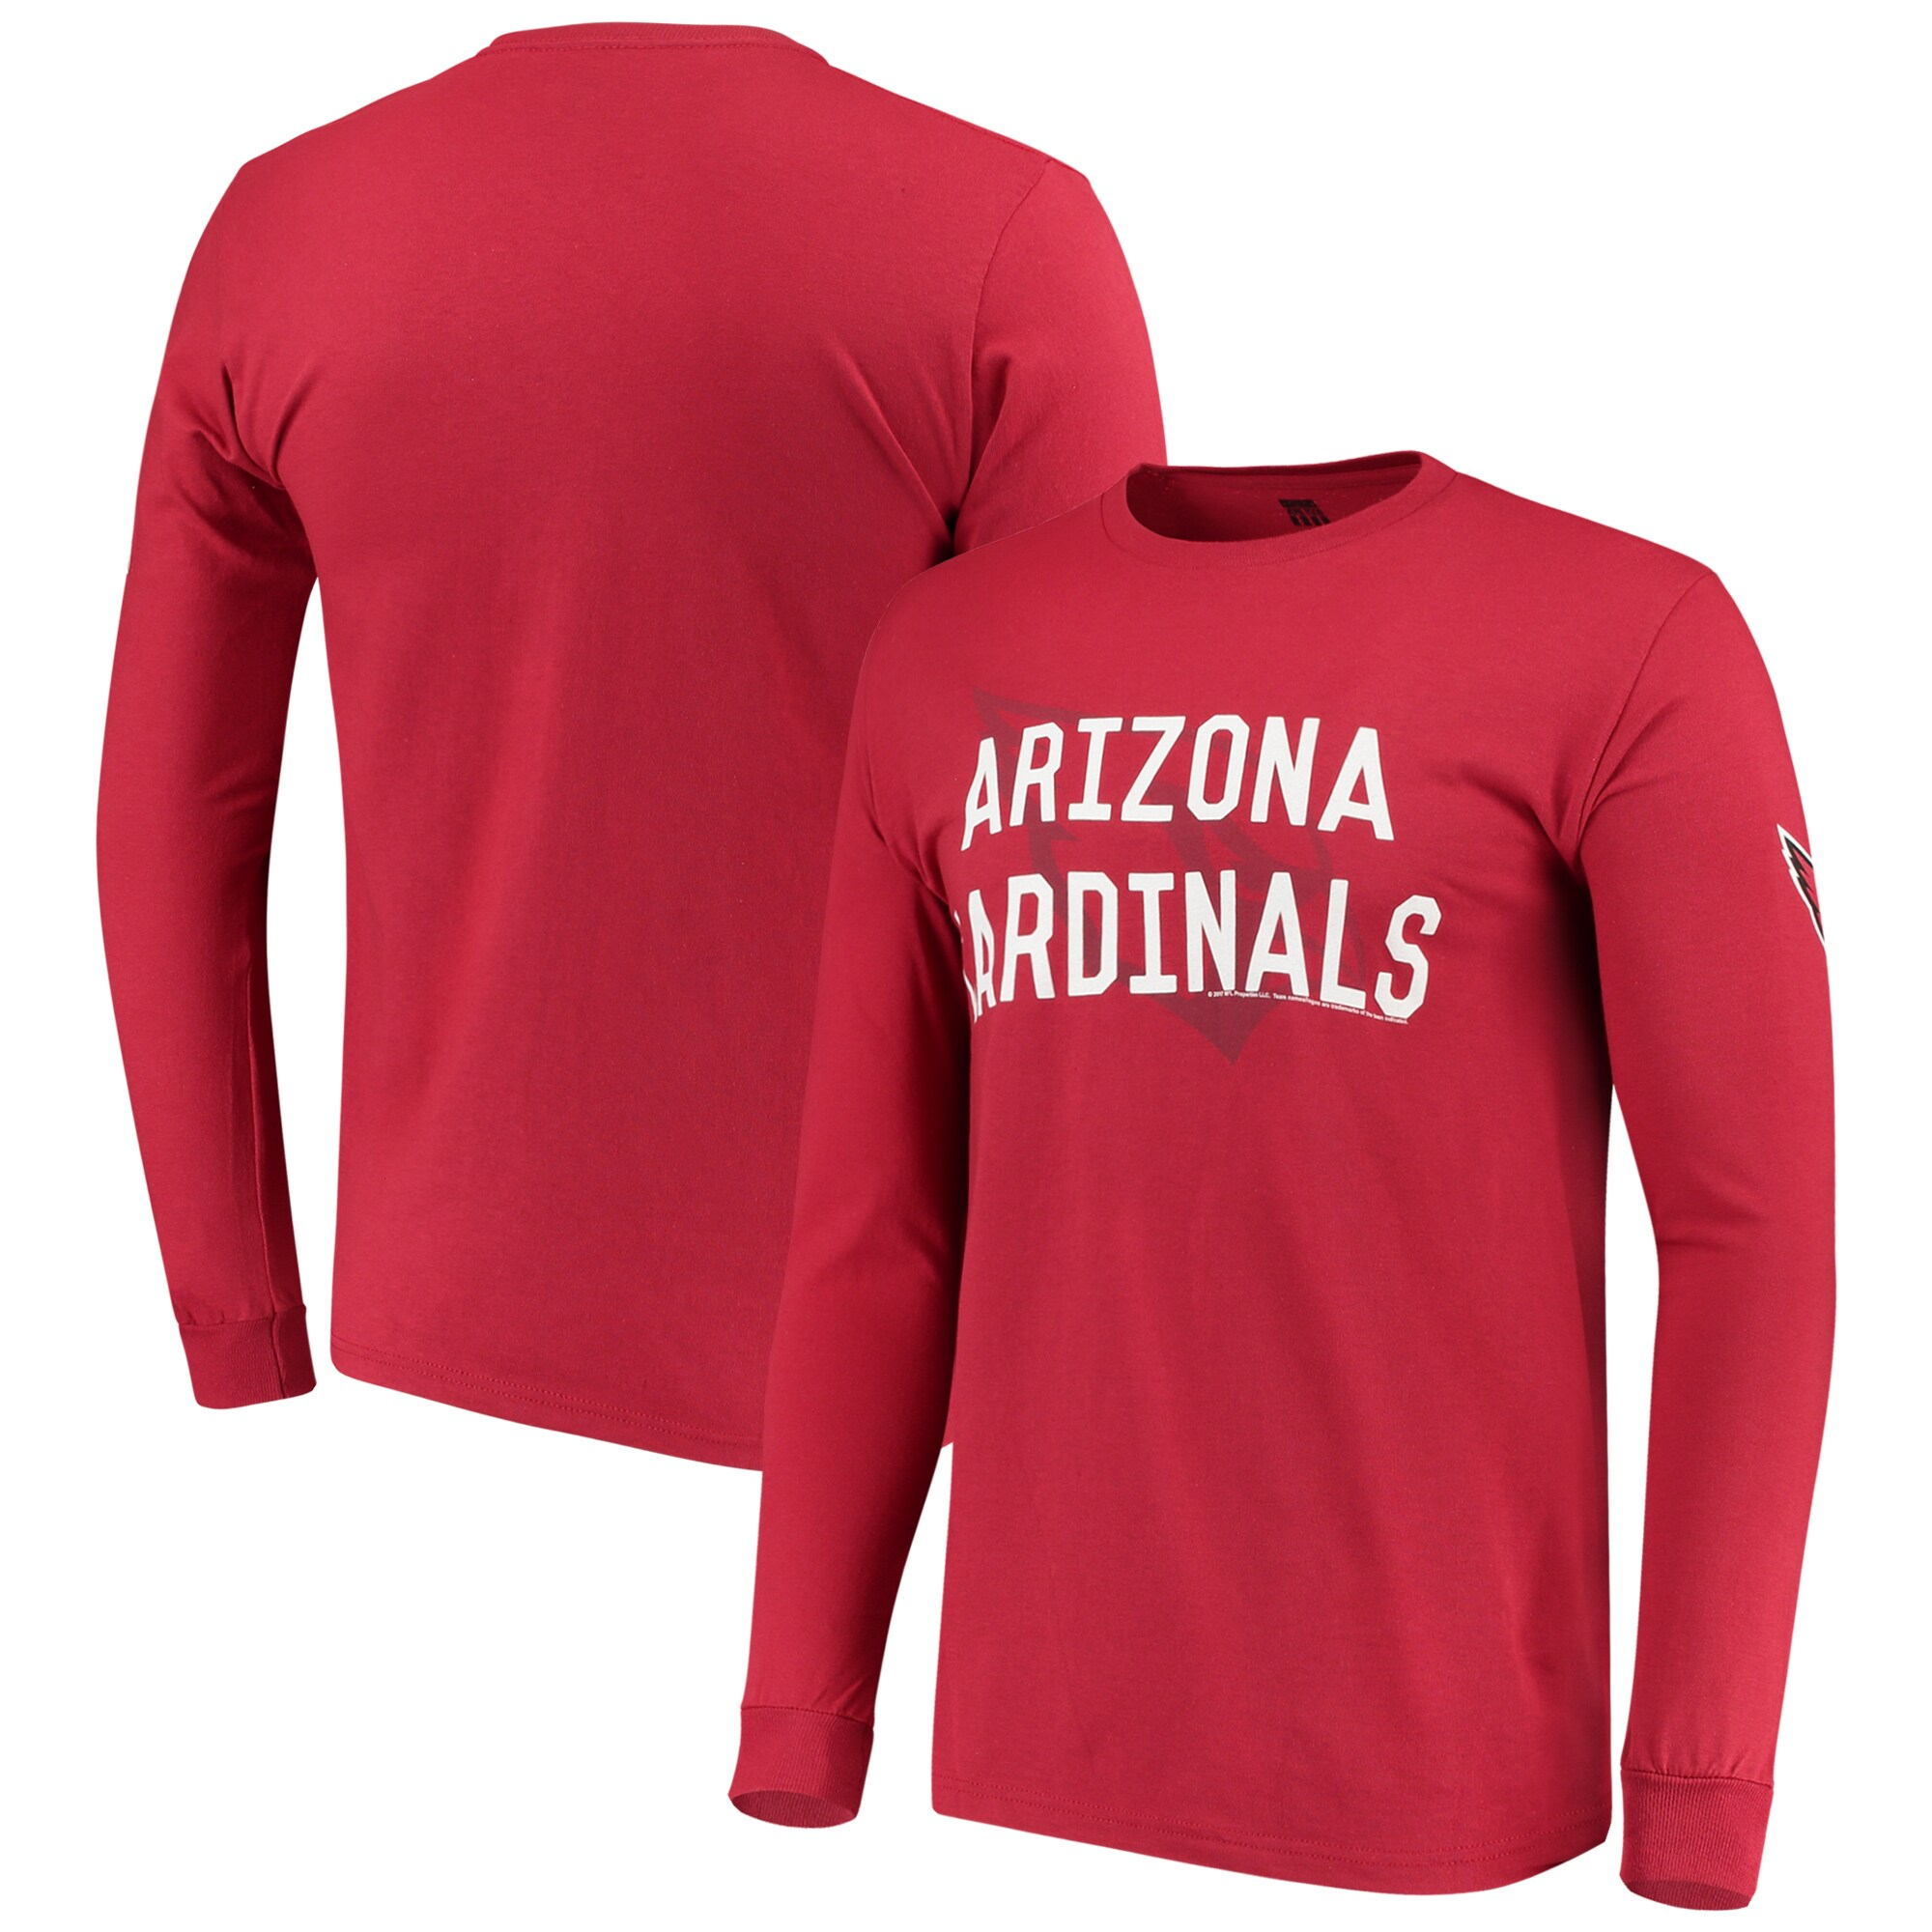 Arizona Cardinals Fade Route Long Sleeve T-Shirt - Cardinal